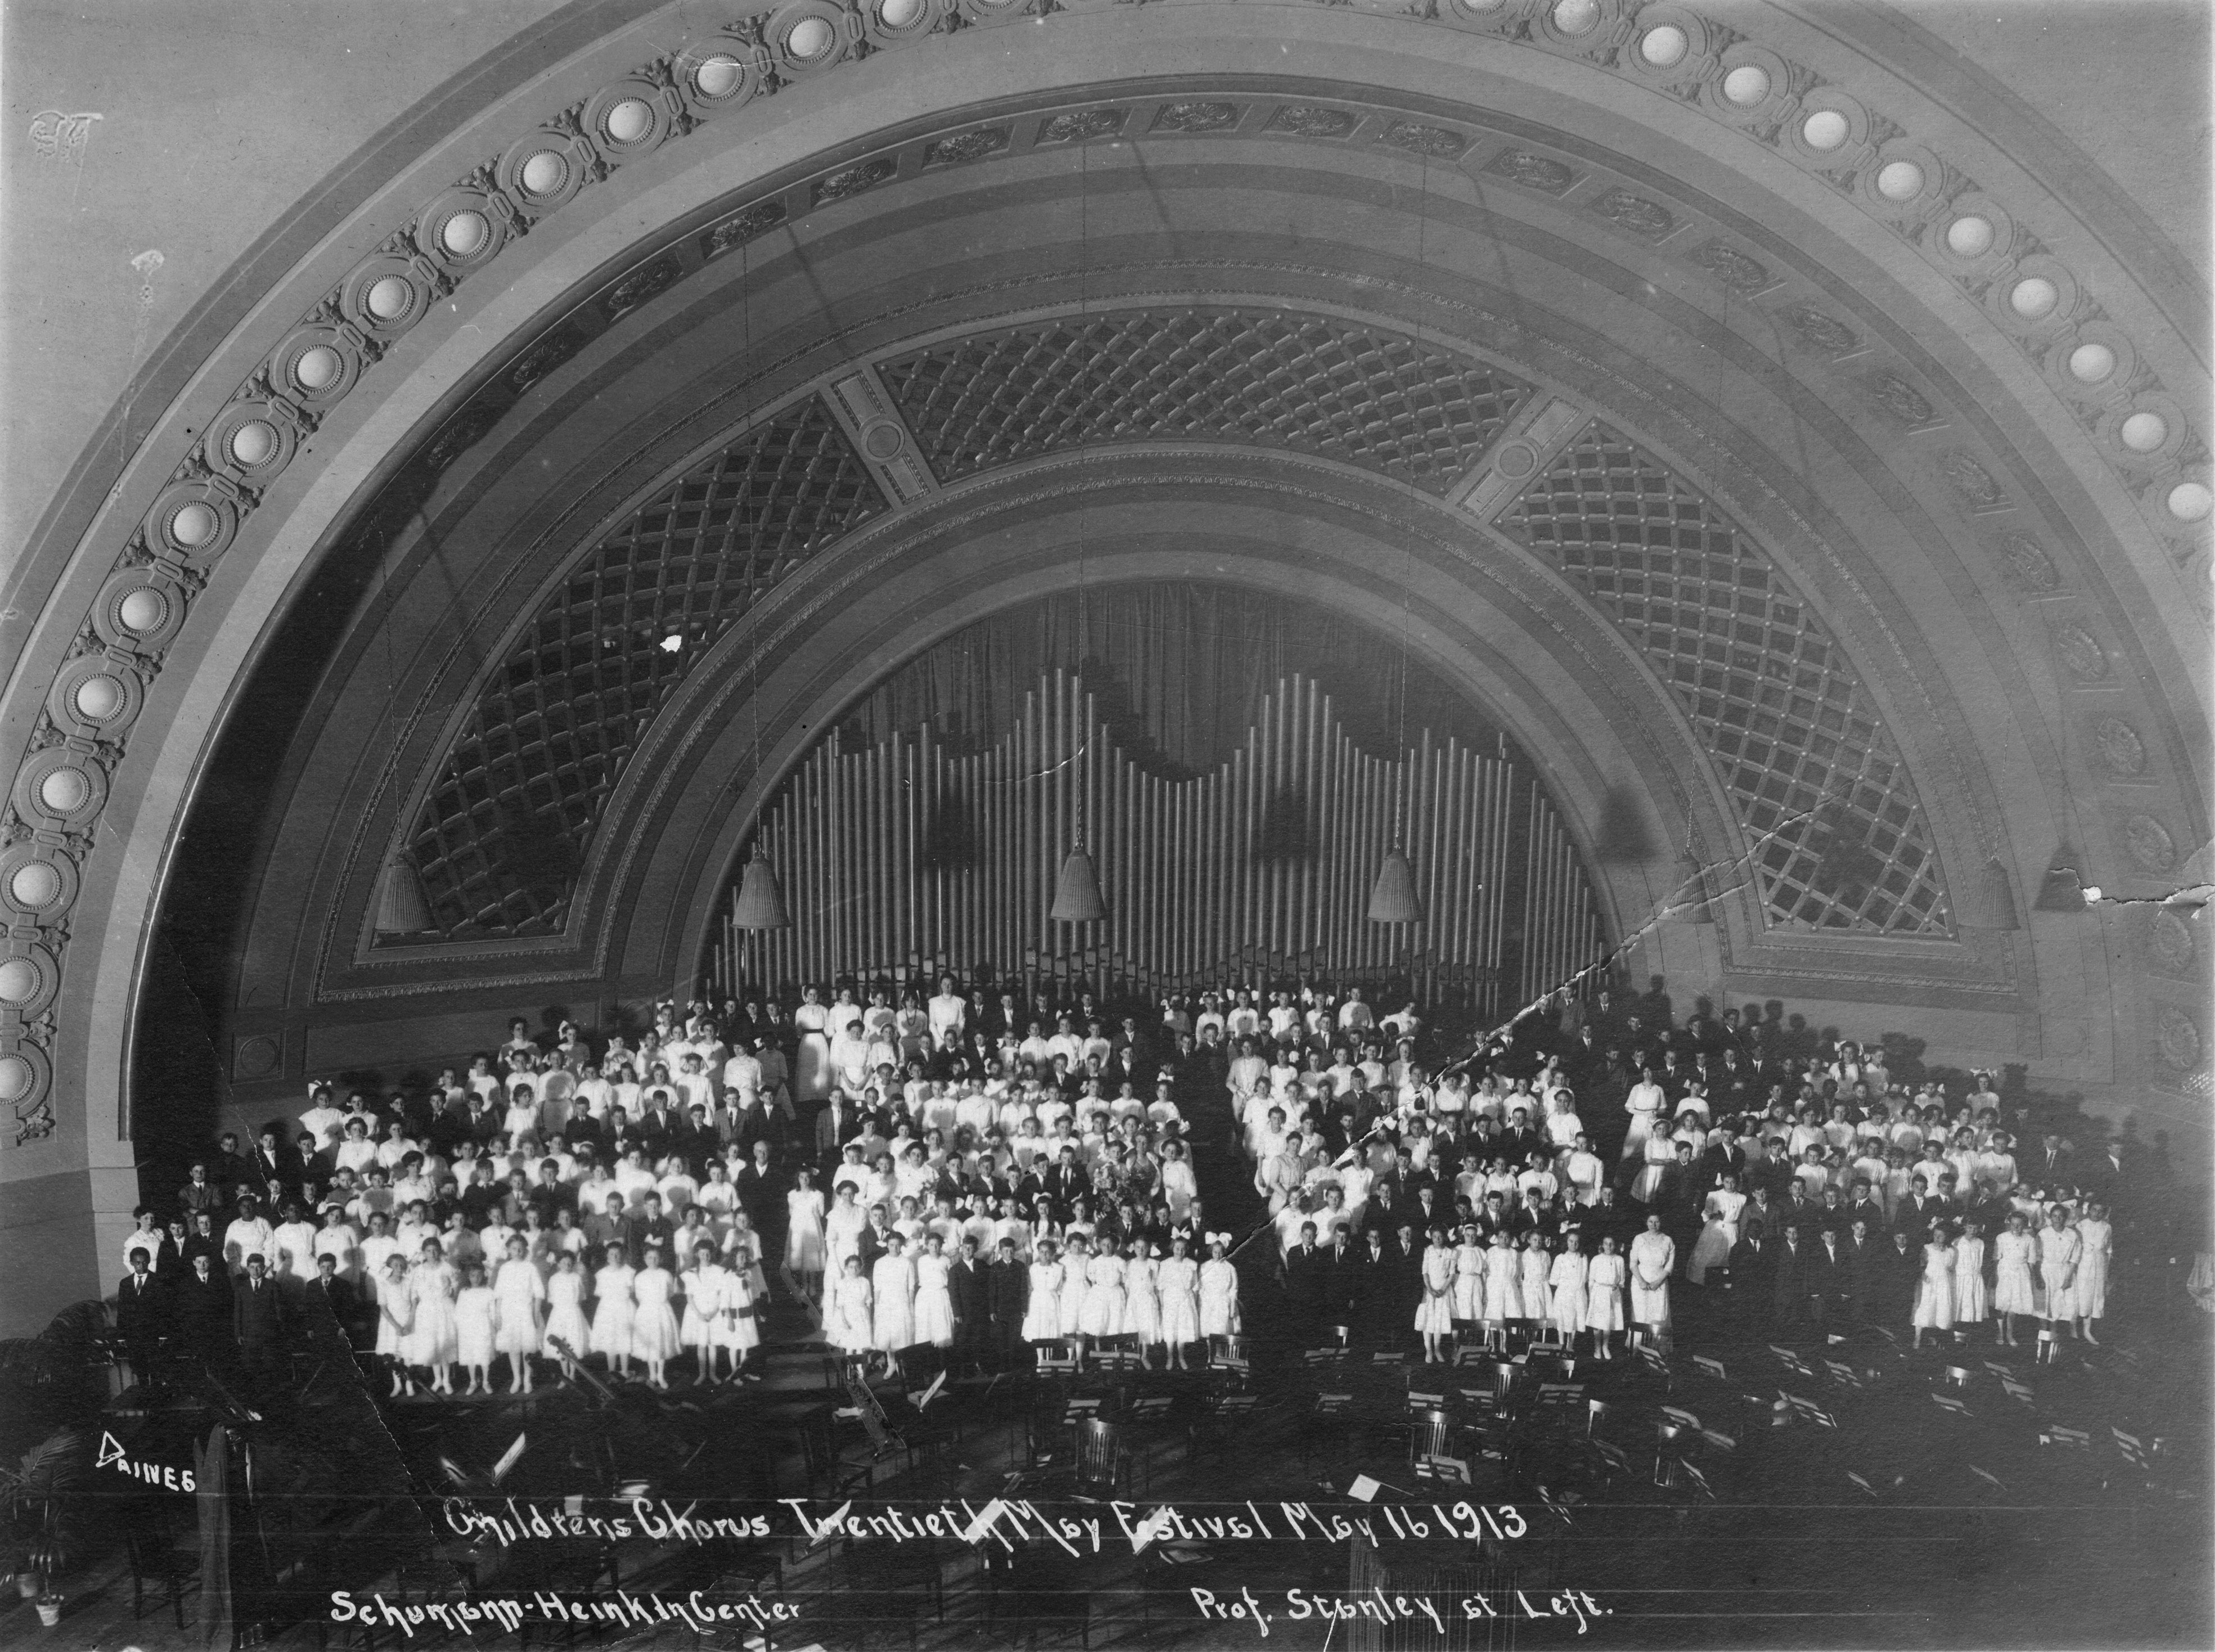 Youth Chorus Open May Festival in the new Hill Auditorium, 1913 image